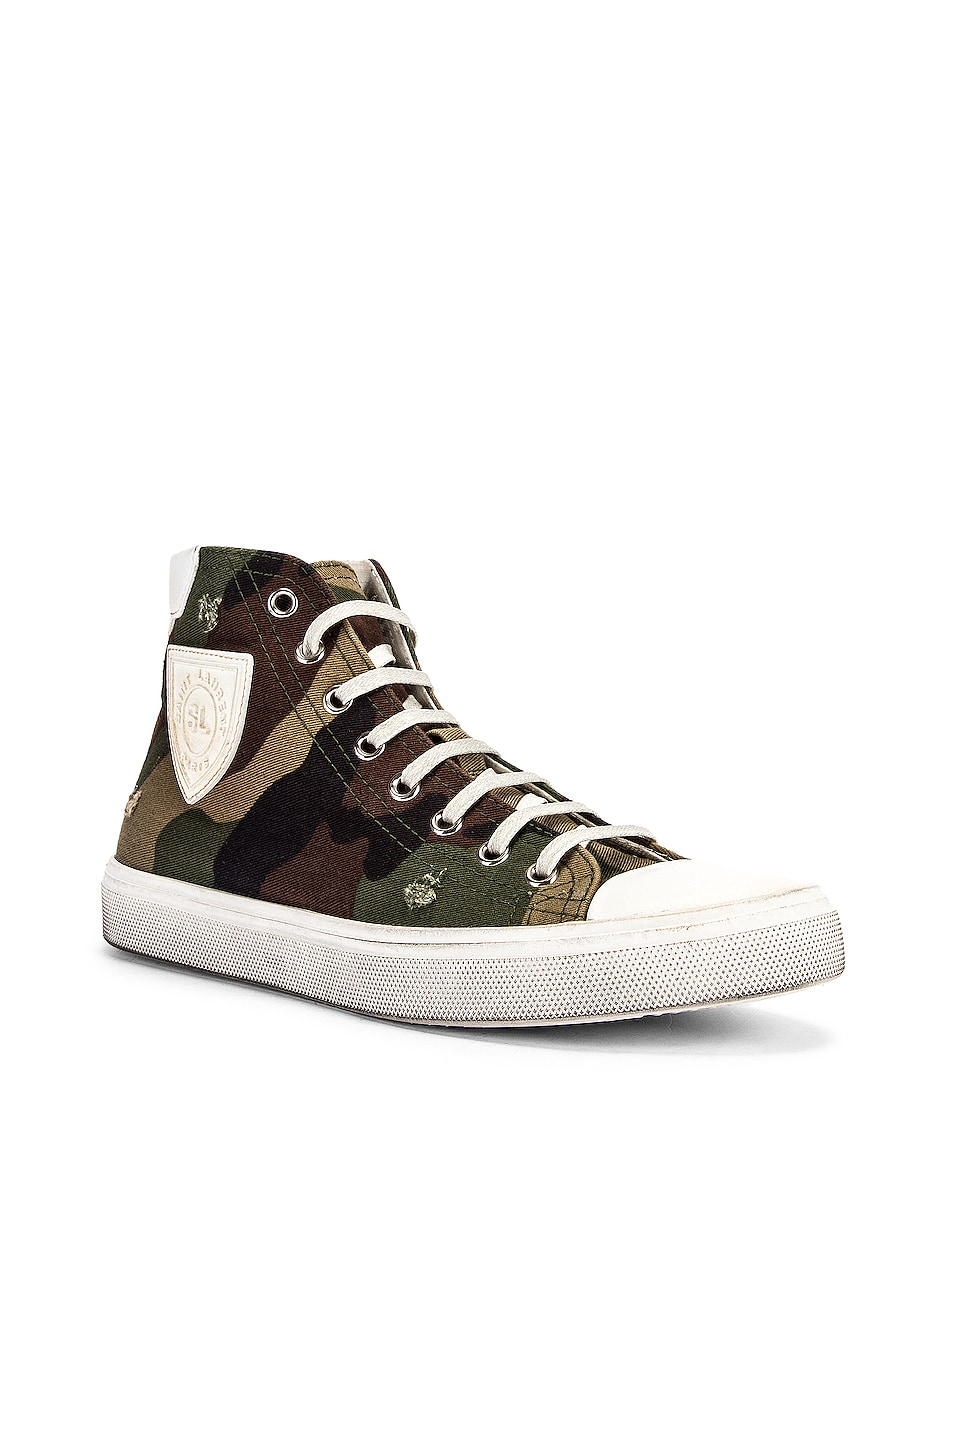 Image 2 of Saint Laurent Bedford Patch Sneakers in Khaki